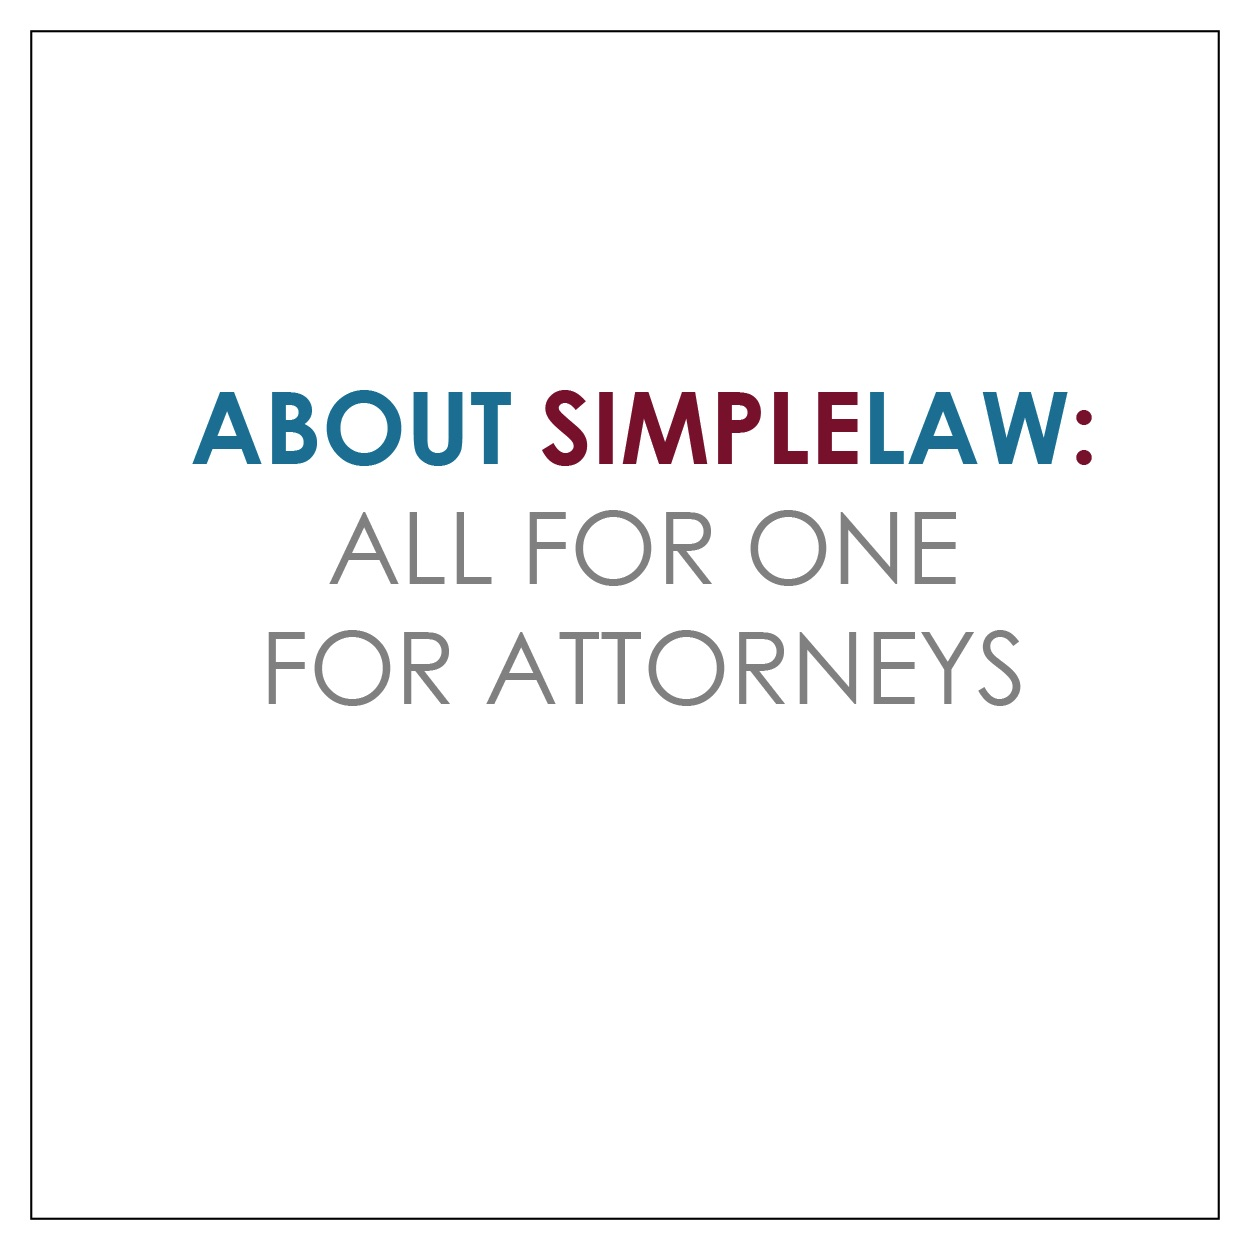 All-For-One-For-Attorneys-Title